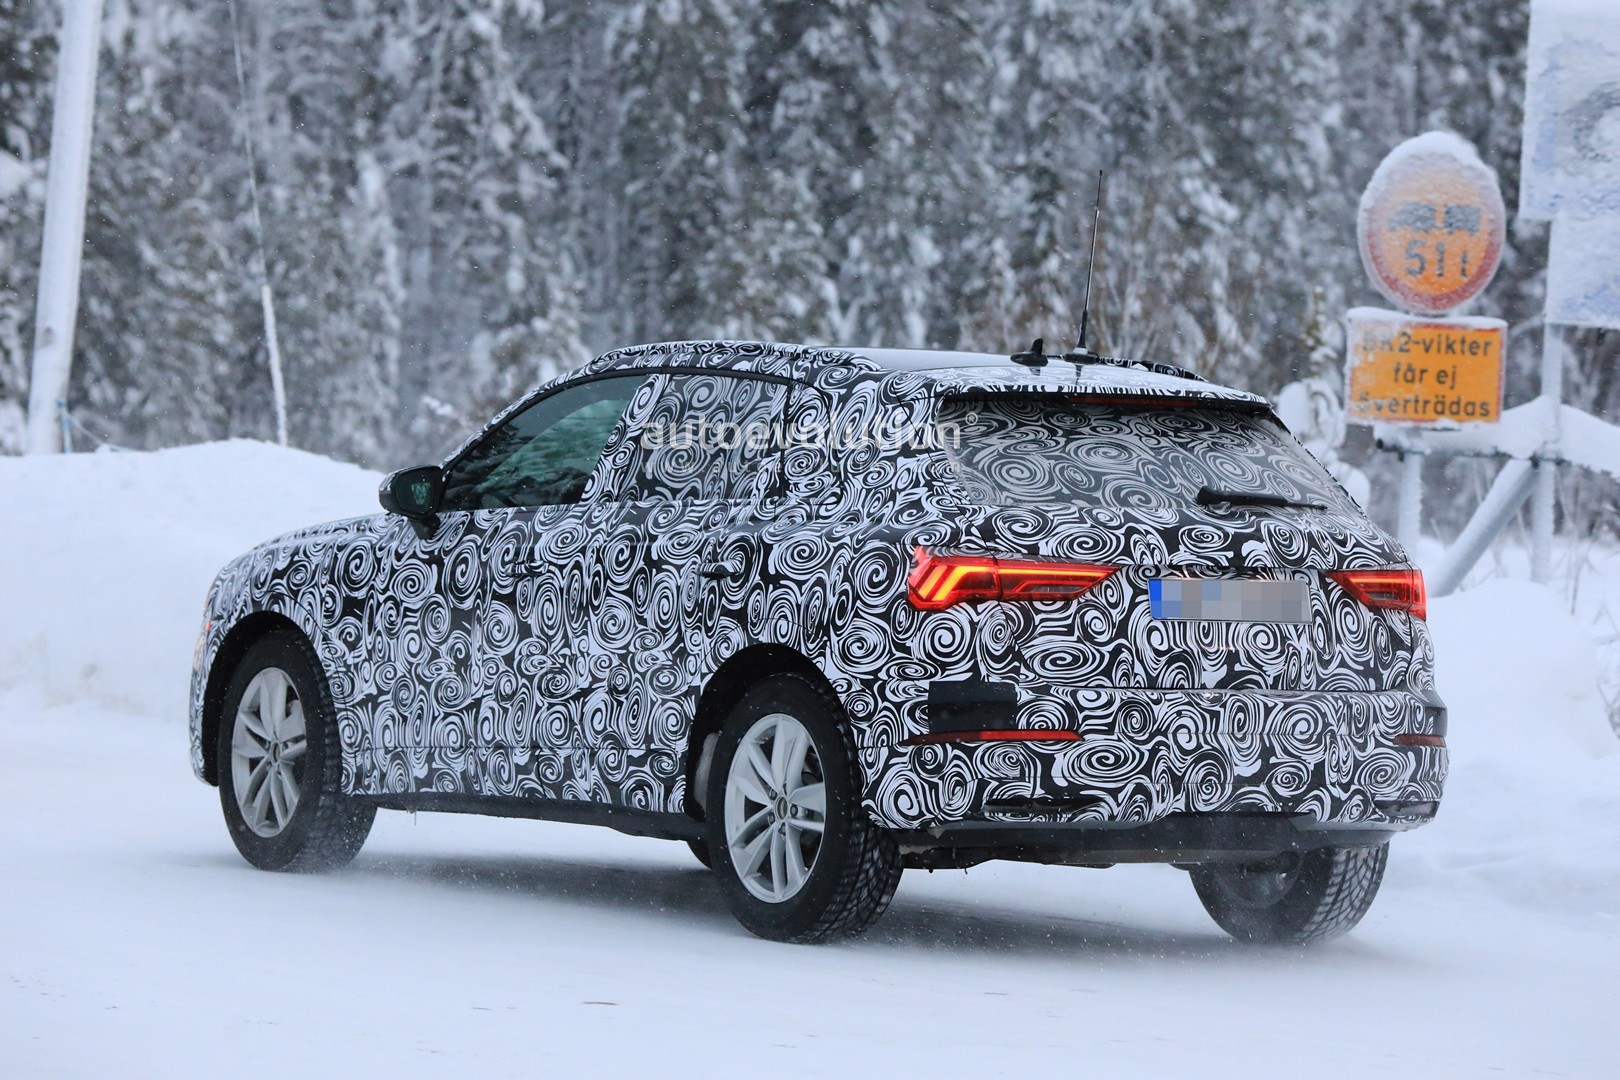 Audi Q Spied With New Taillights Looks TiguanLike - Ej audi